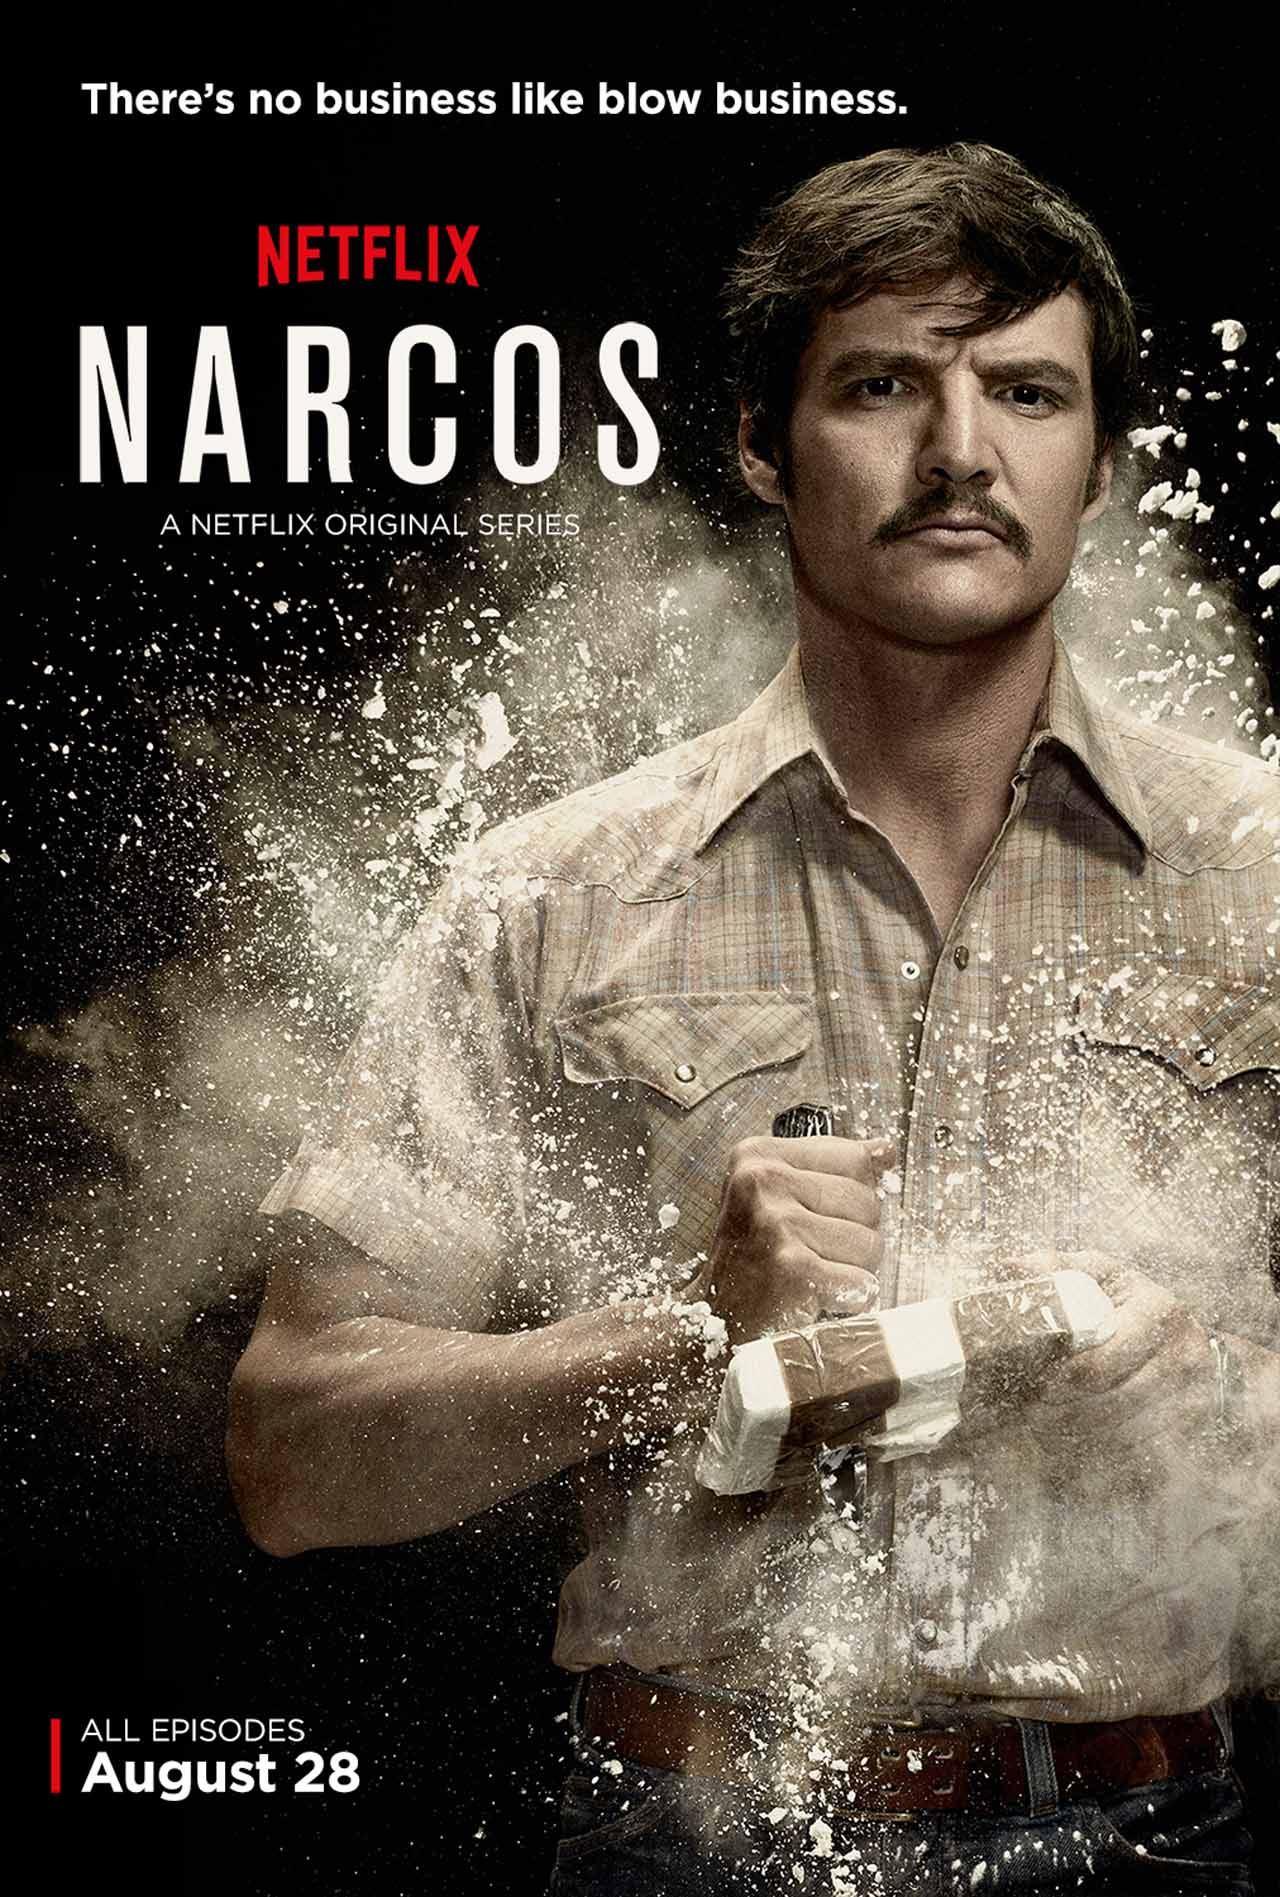 For Love of Cocaine and Empire: Narcos season 1 « The Hooded